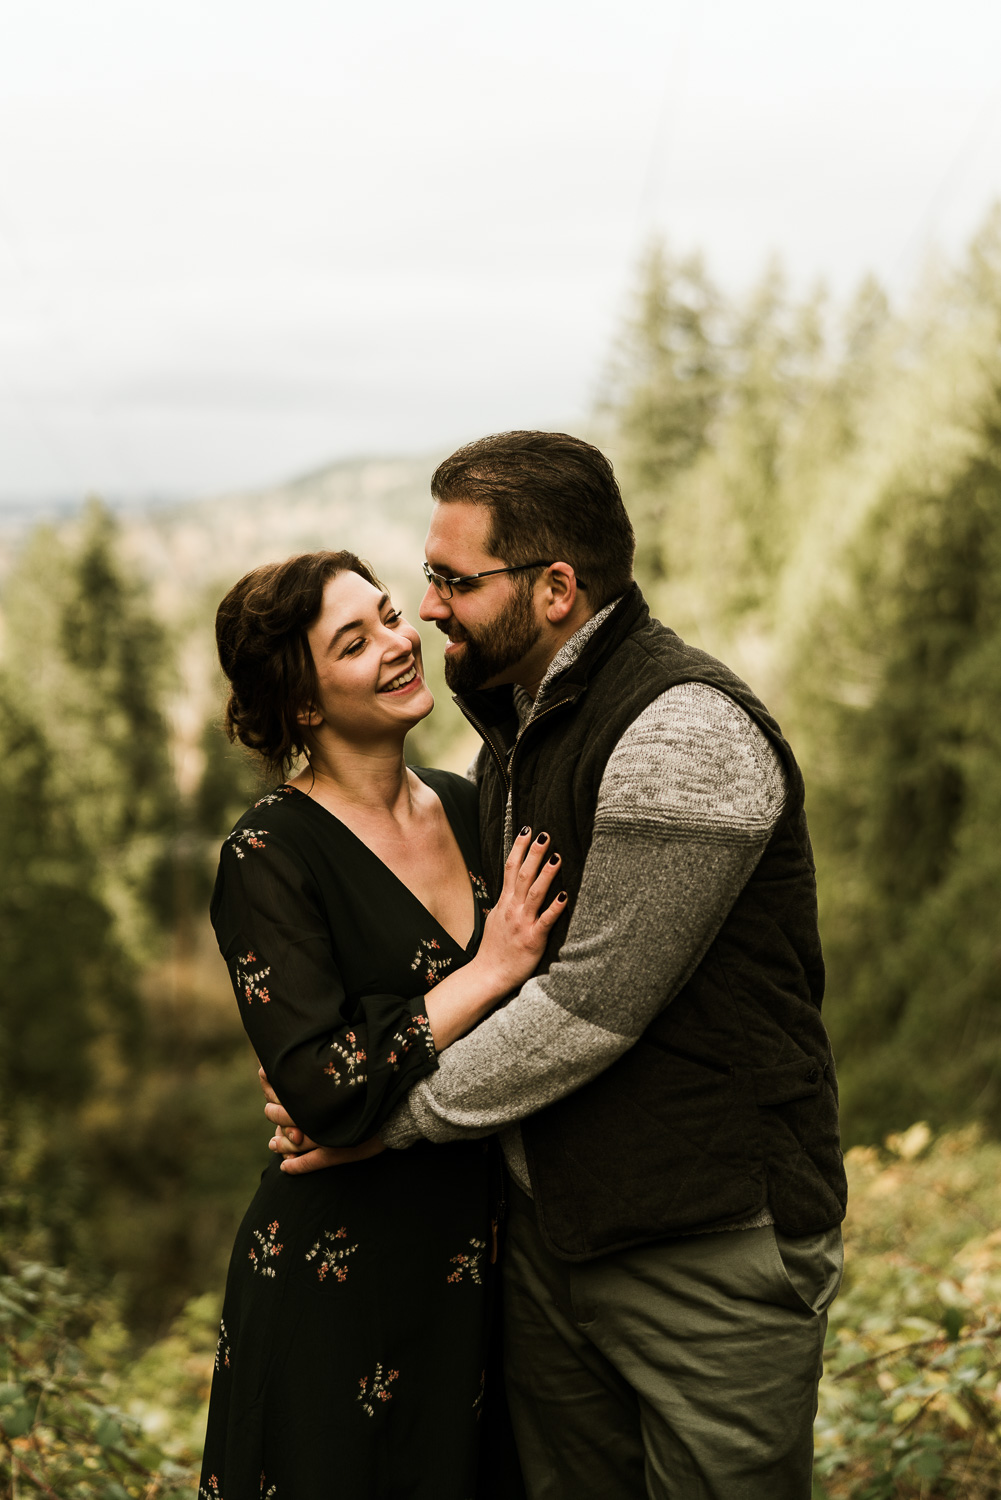 A Picturesque PNW Engagement Session | Snoqualmie Falls | Seattle Wedding photographer-24.jpg